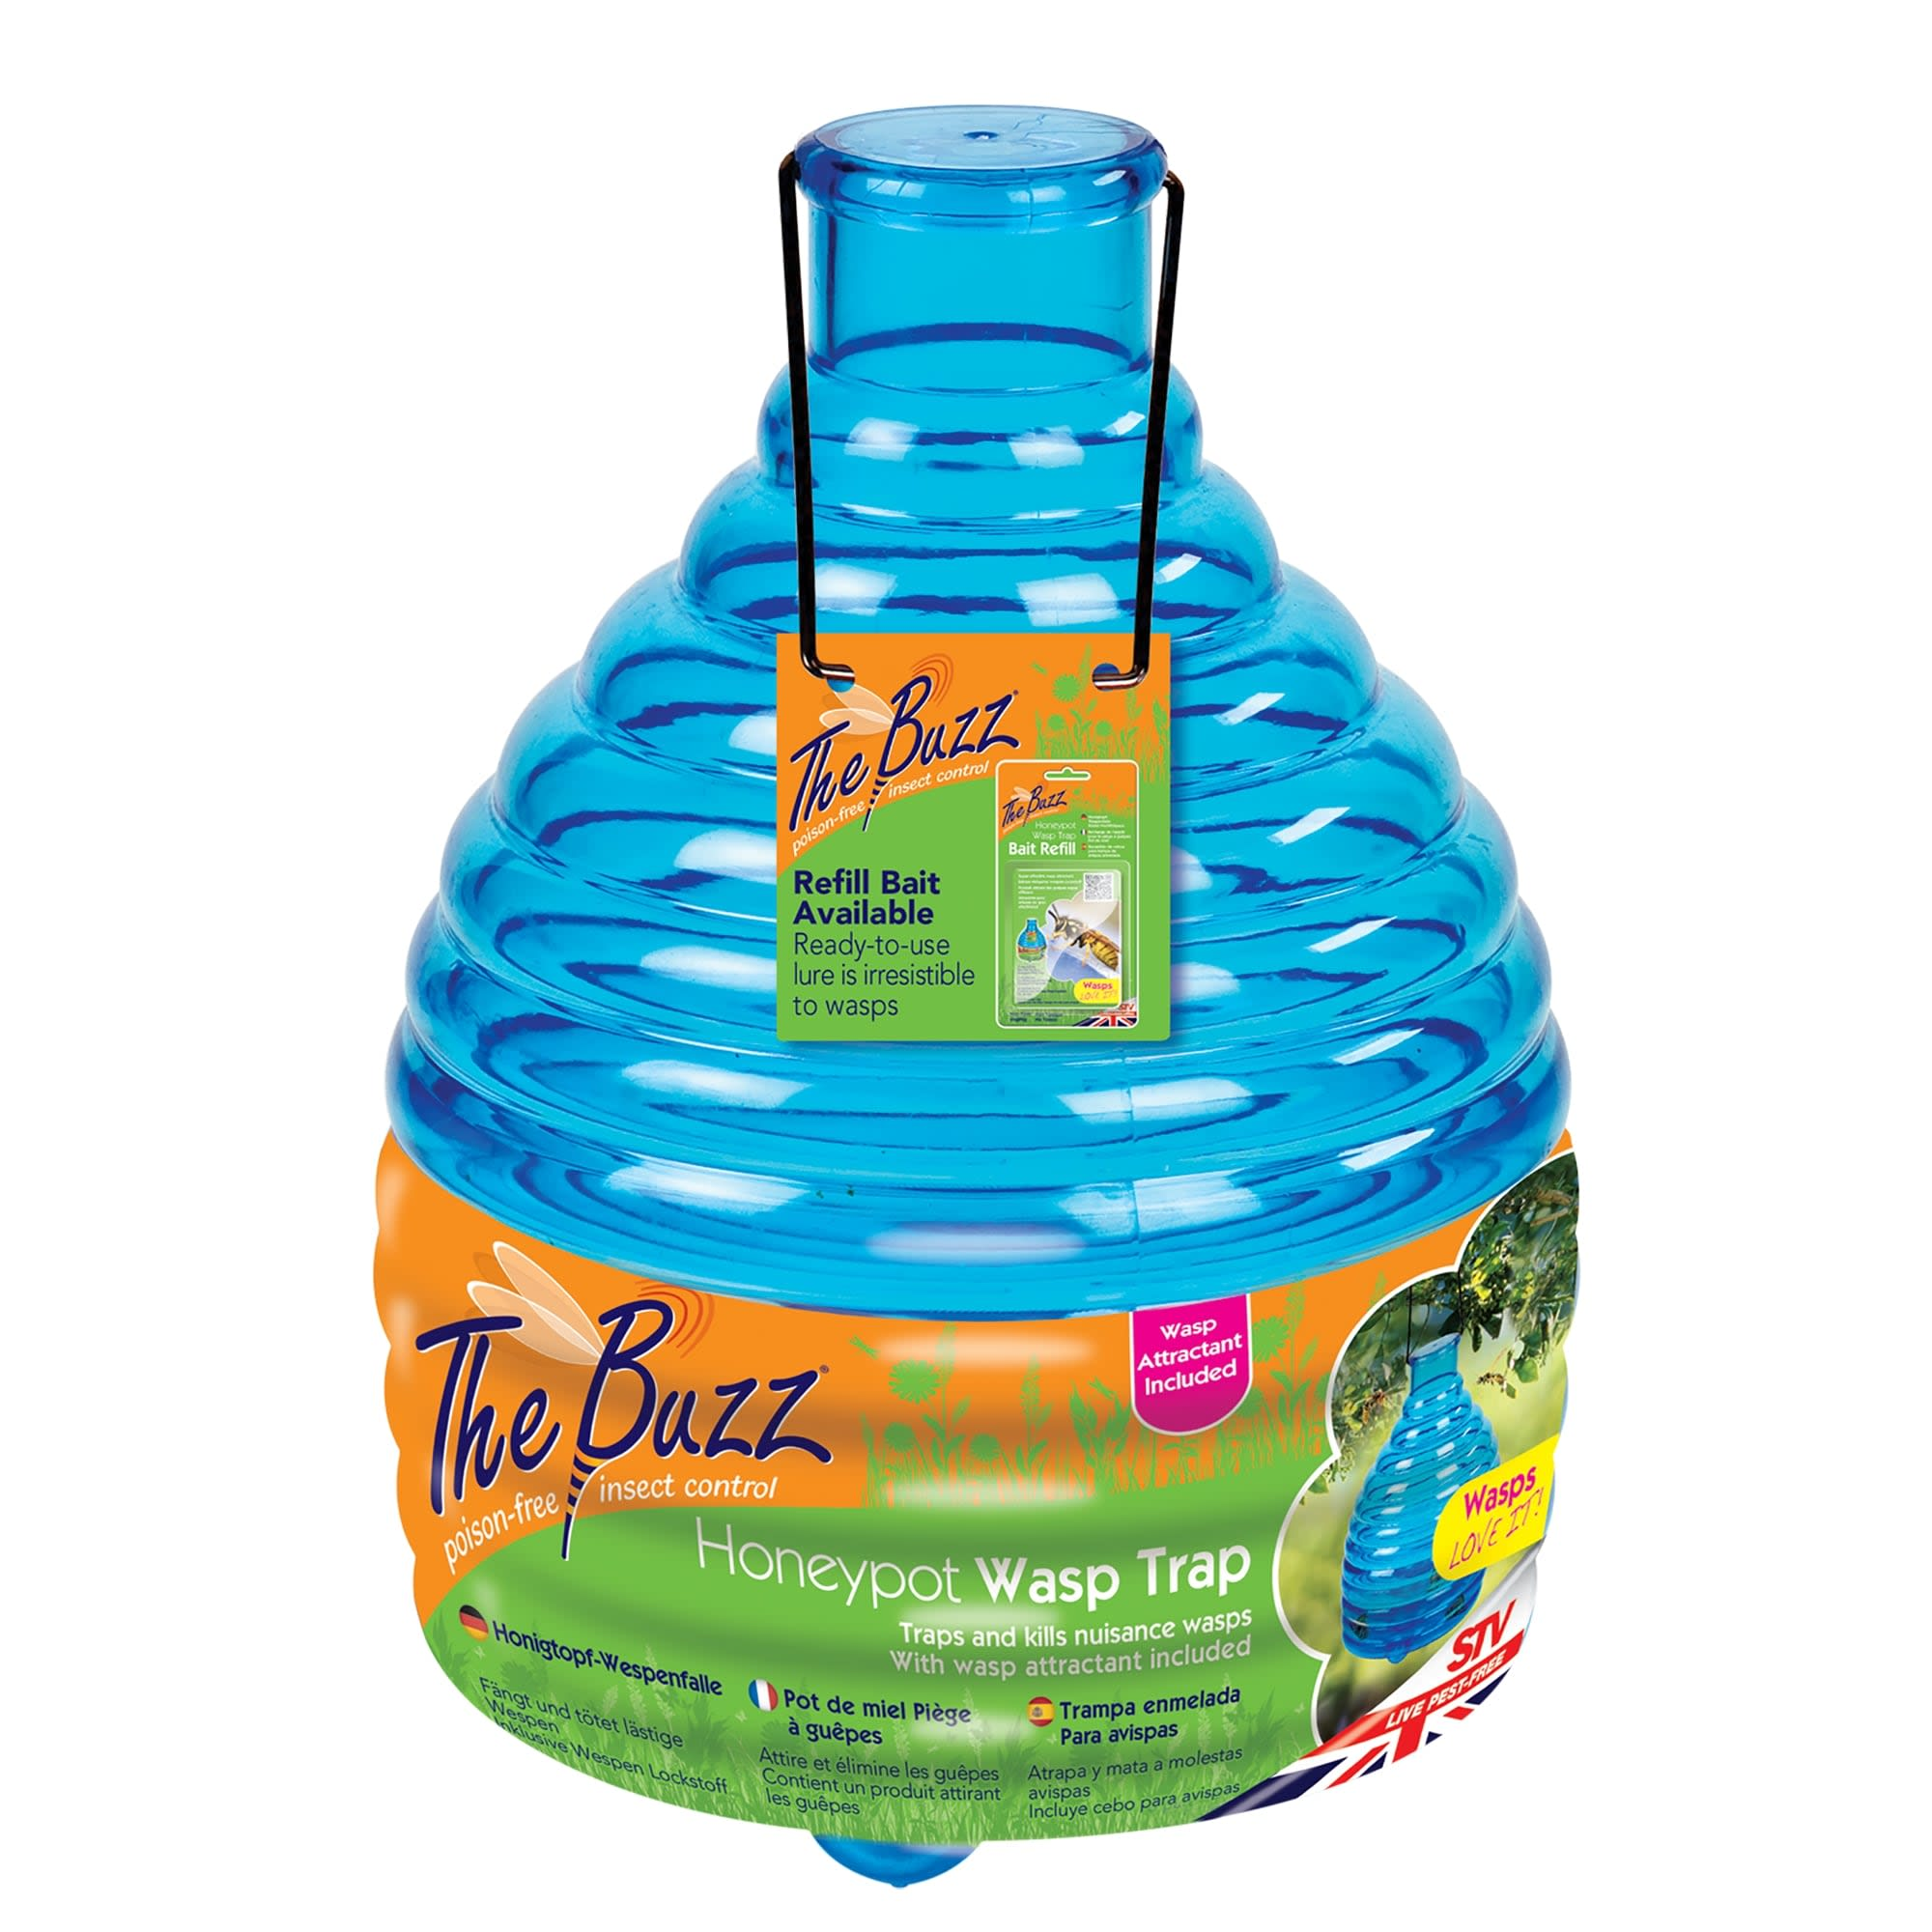 STV Honeypot Wasp Trap with Bait